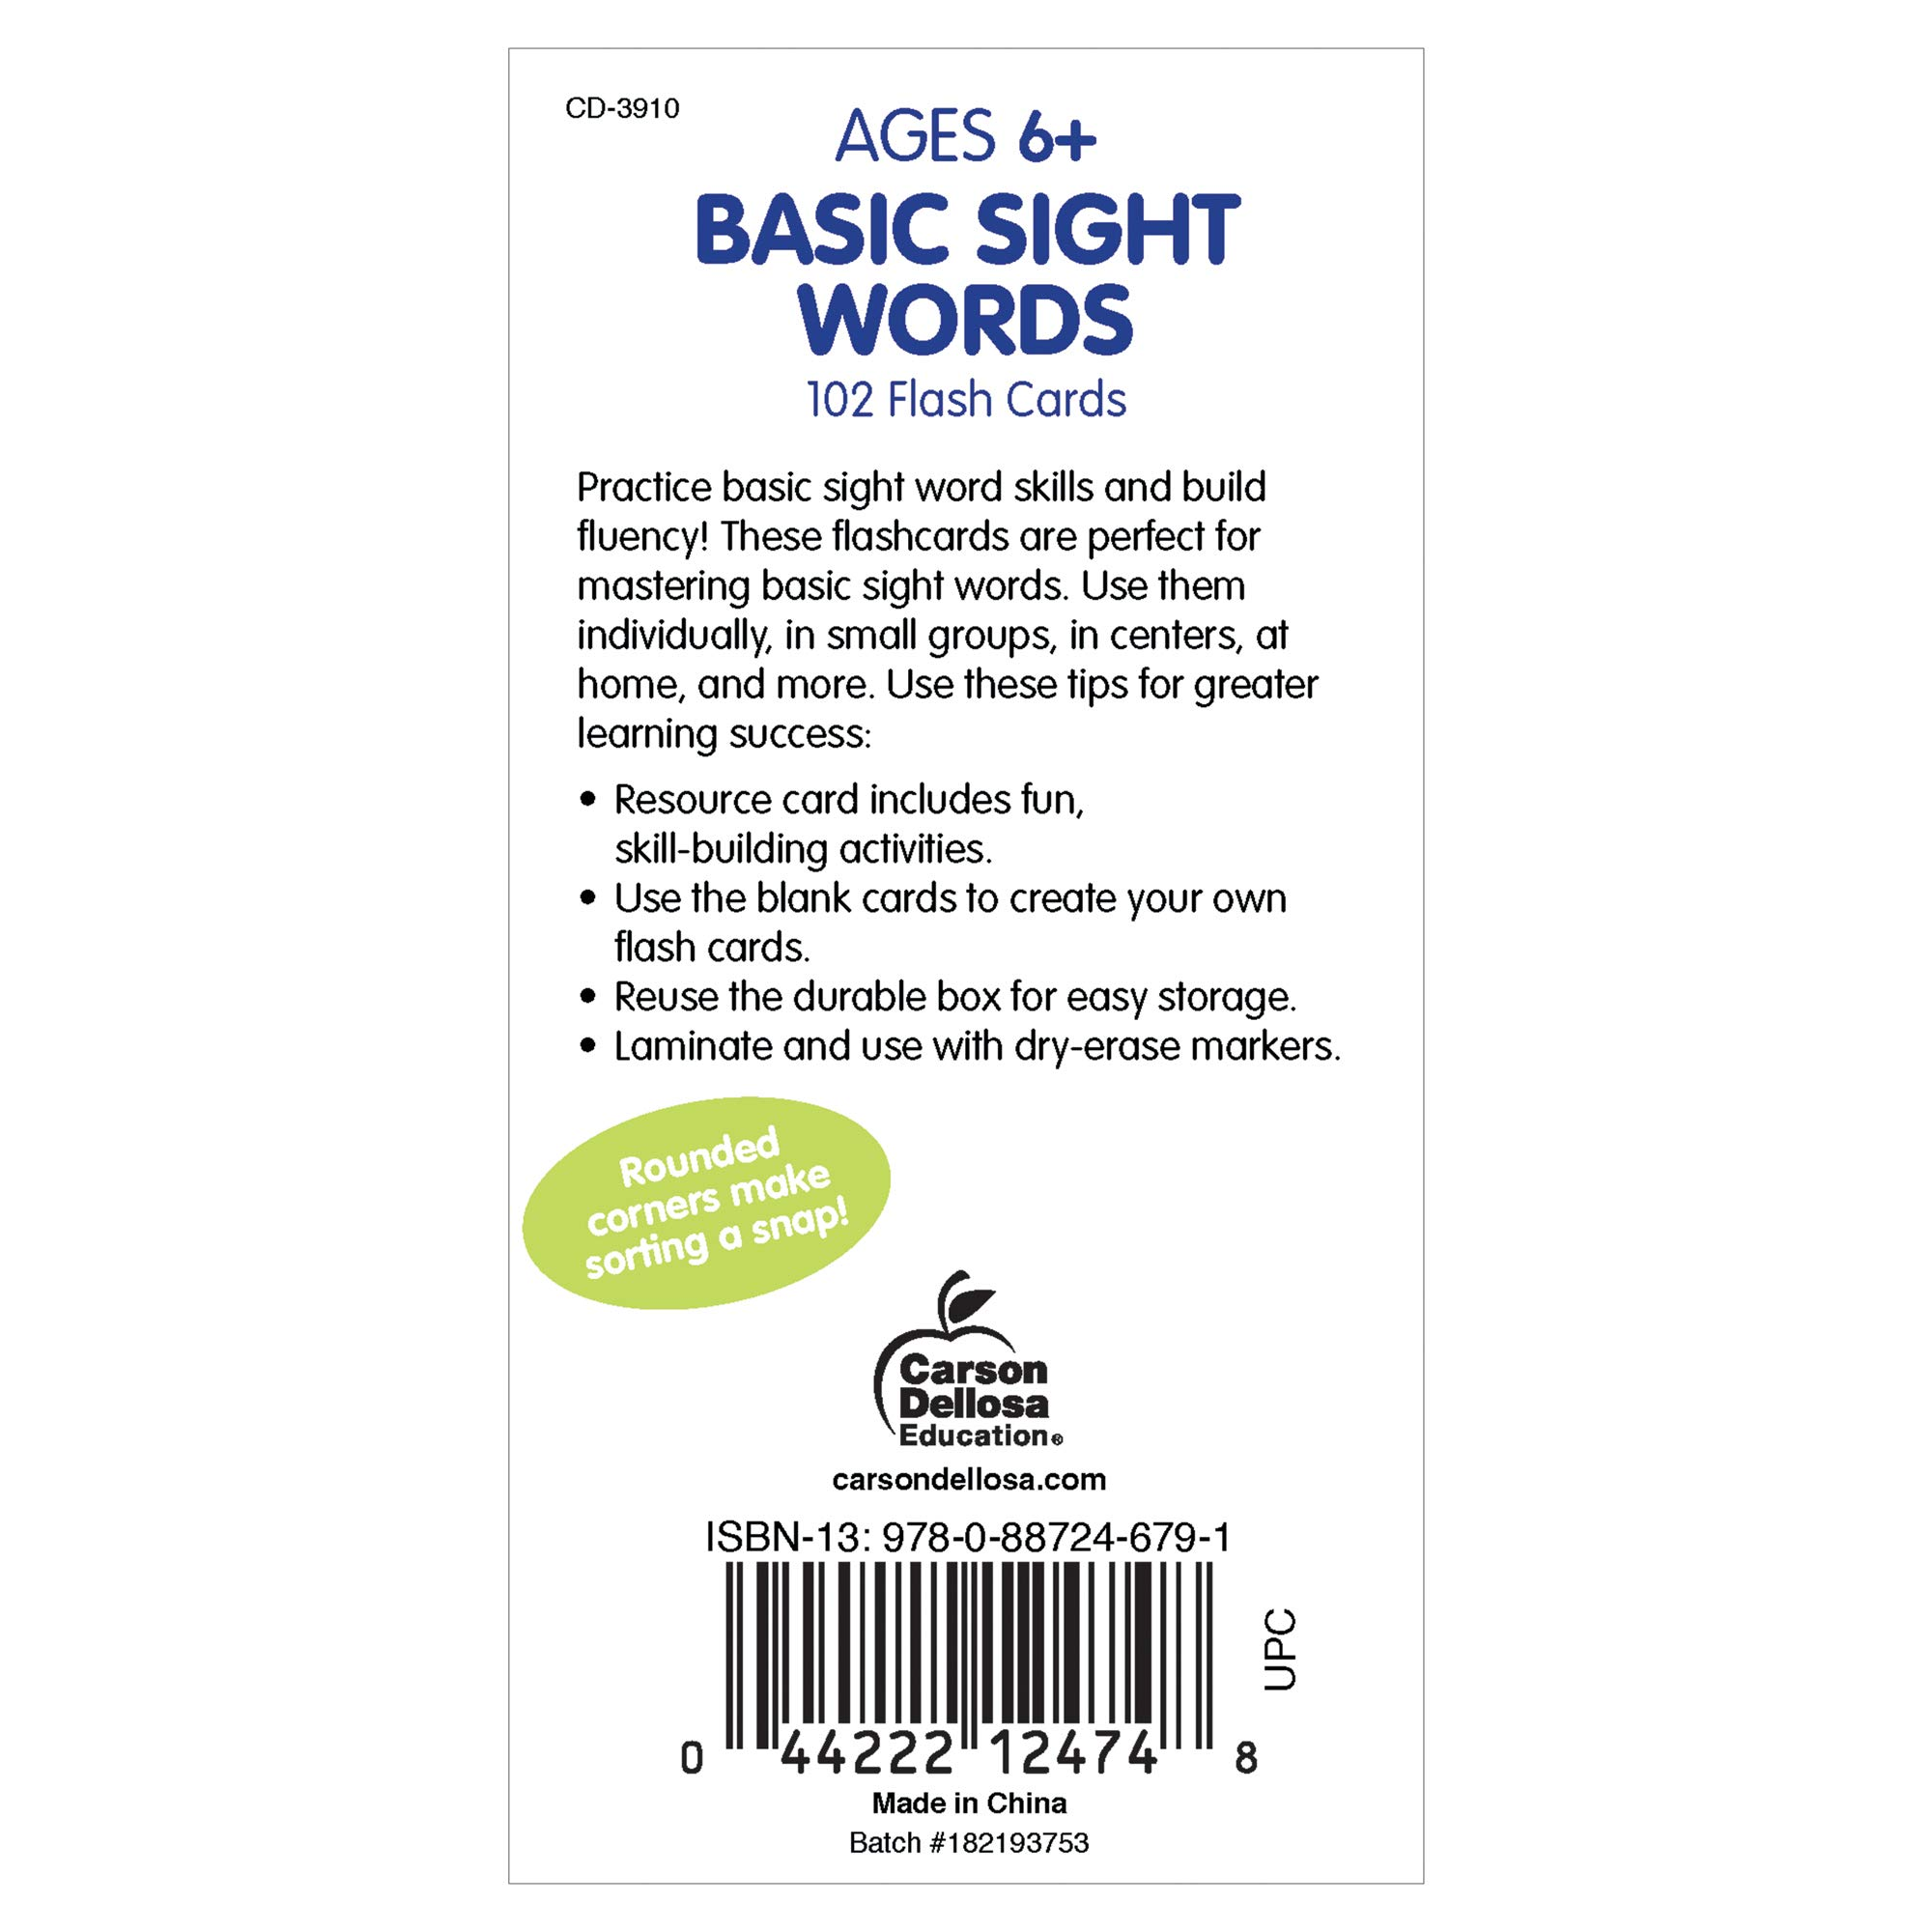 Carson Dellosa - Basic Sight Words Flash Cards - 102 Cards